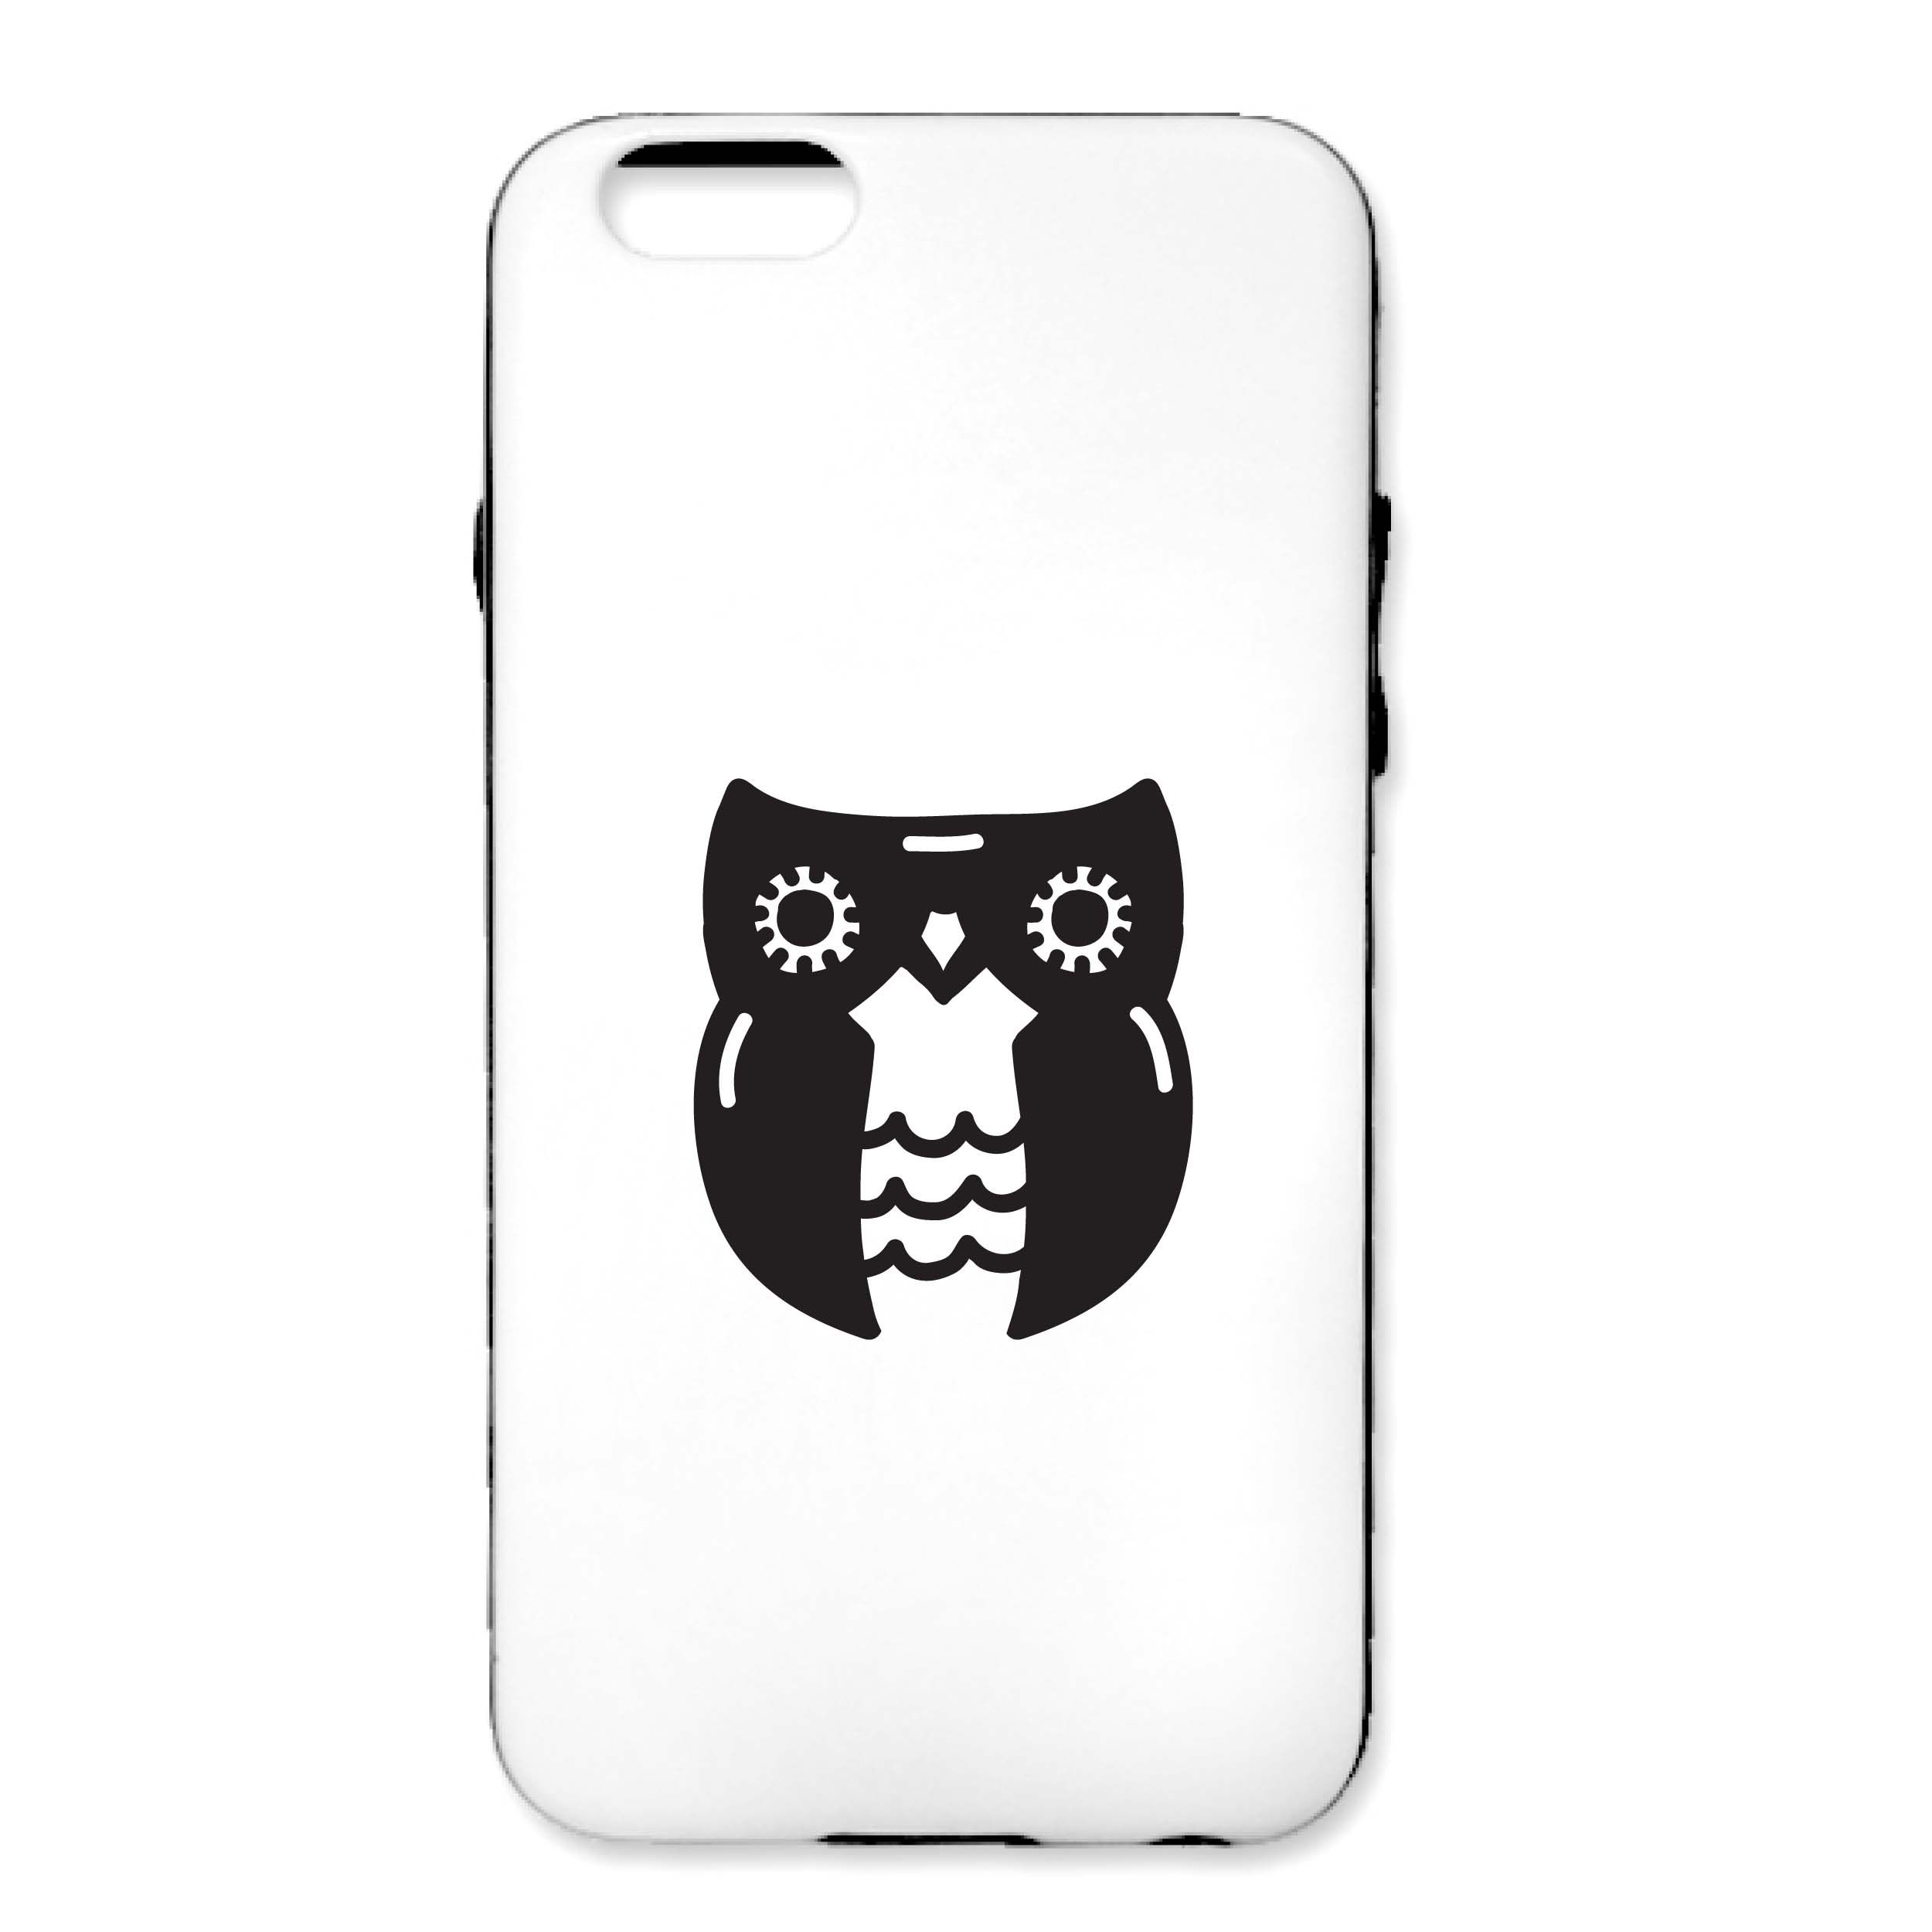 Adorable Owl Cell Phone Decal